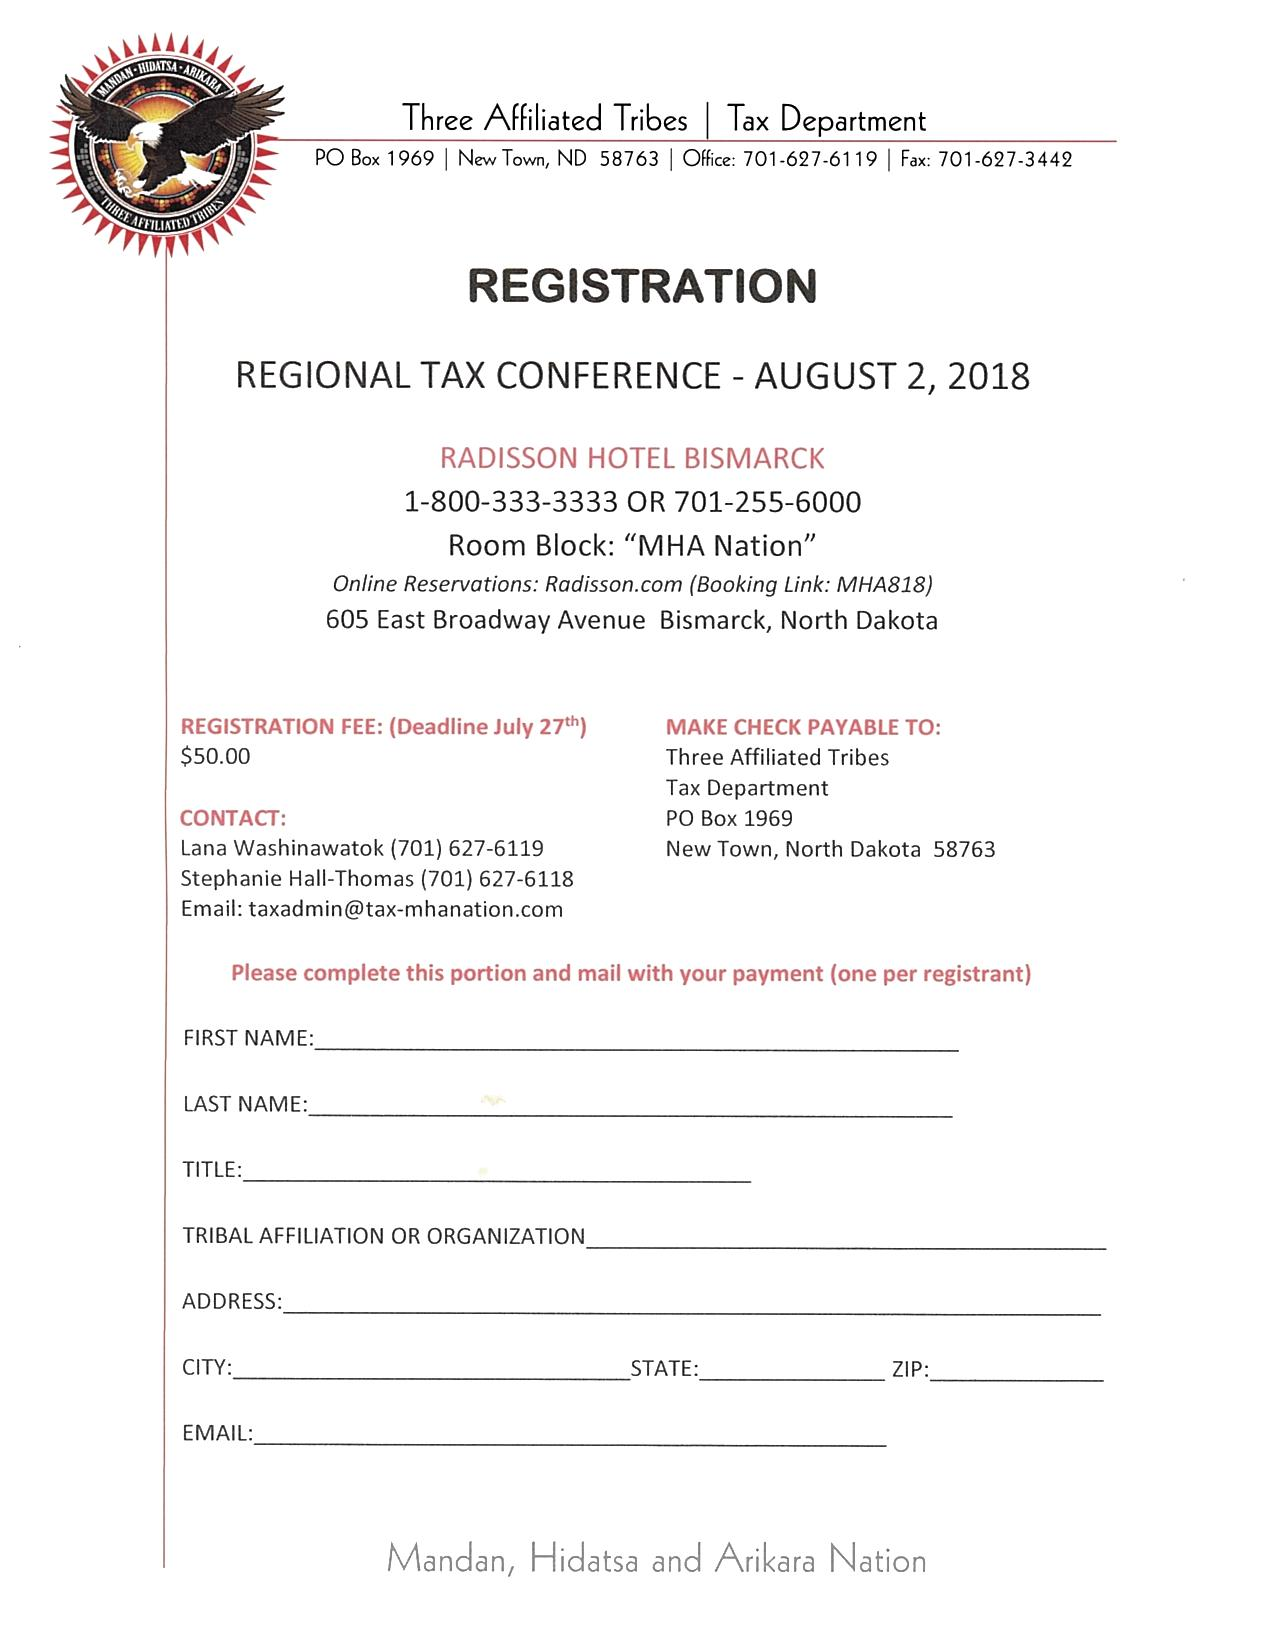 2018 Regional Tax Conf Letter of Invite and Registration Form_Page_2.jpg